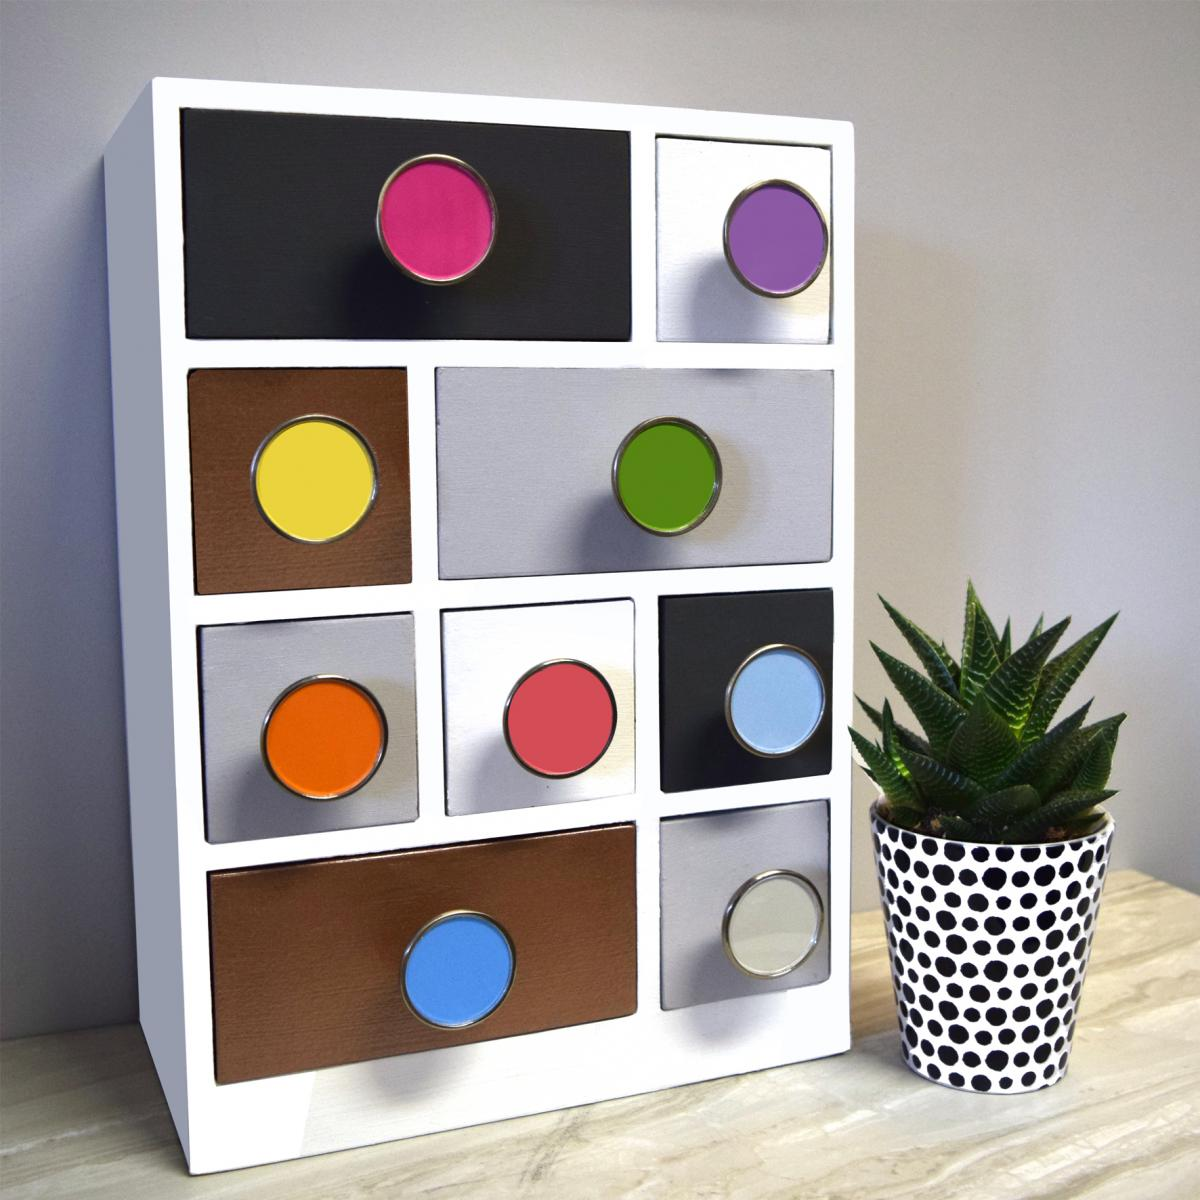 Top Items To Brighten Up Your Home Decor